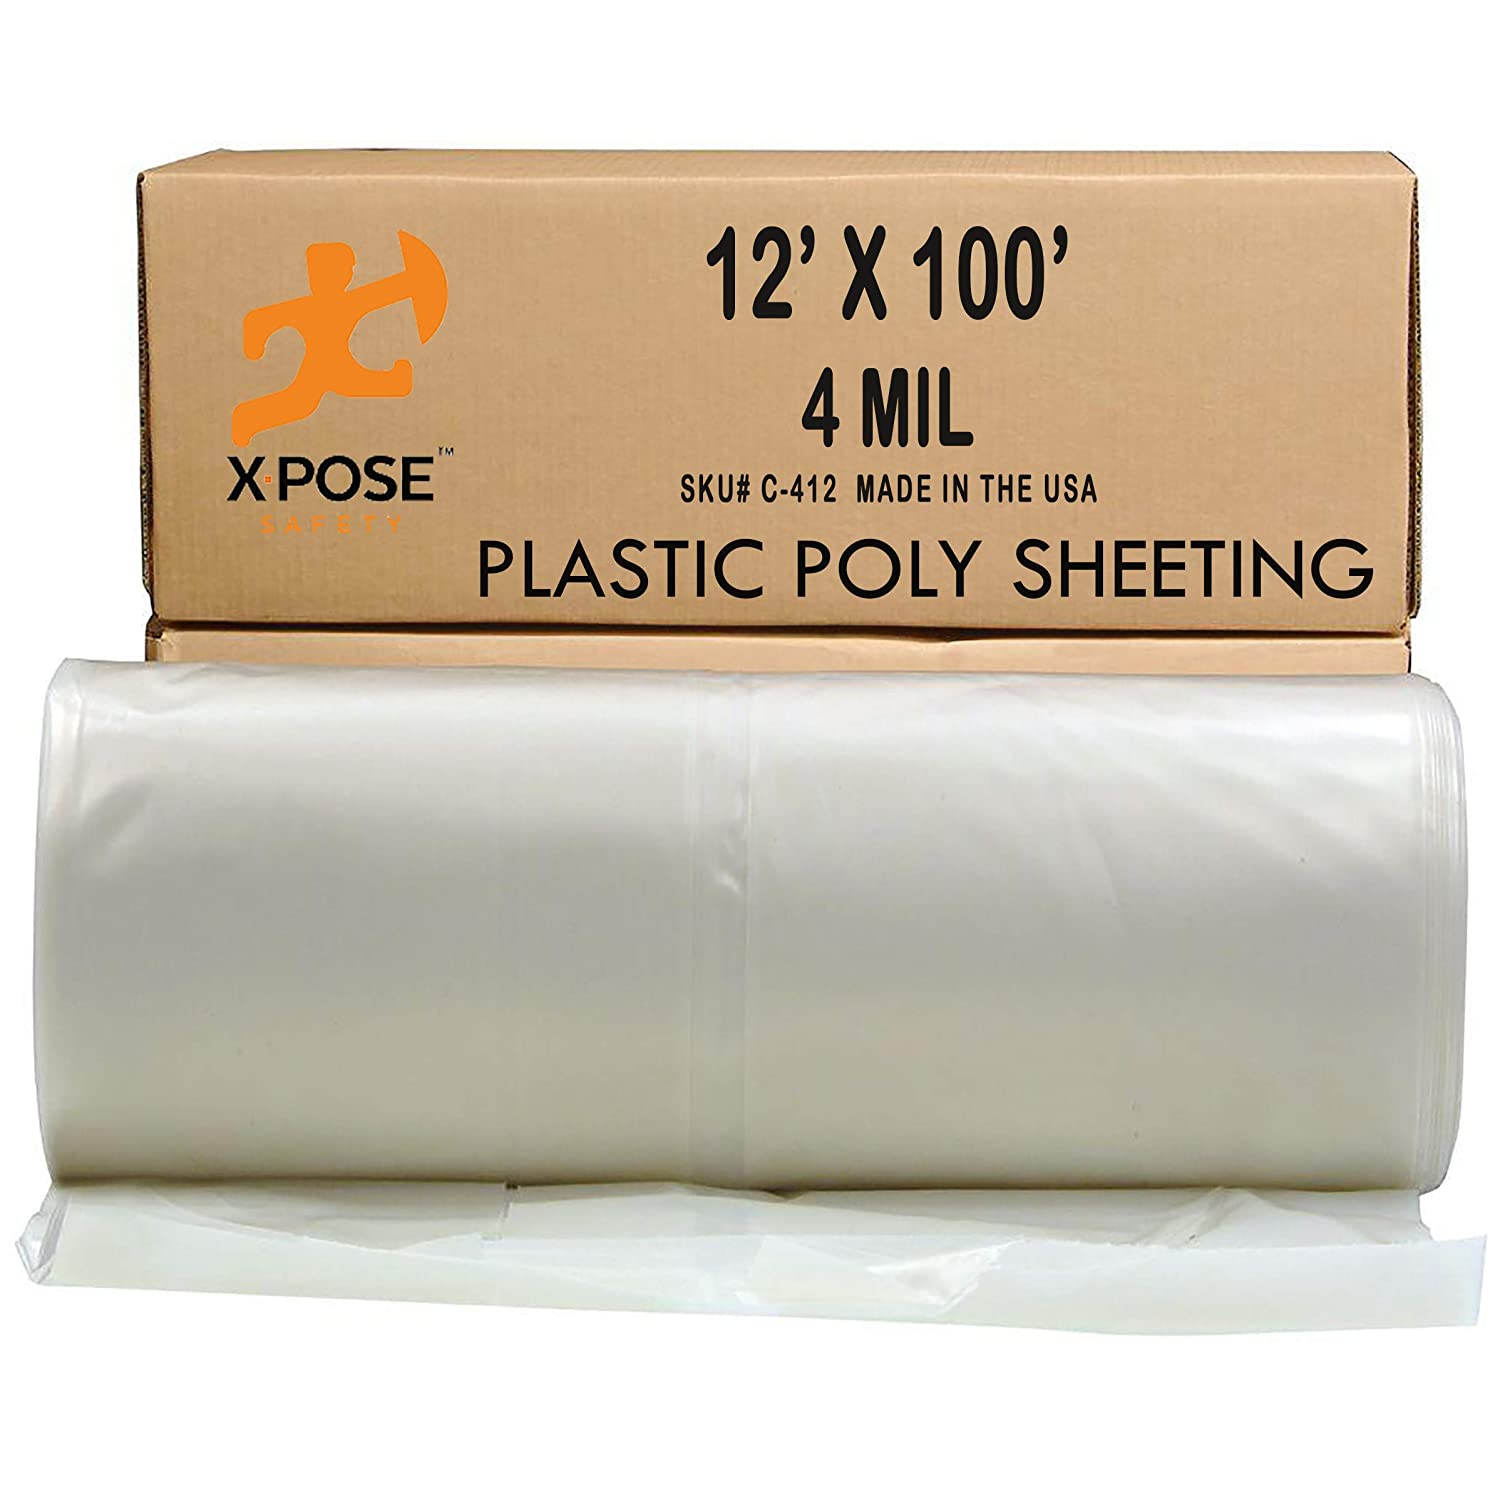 Clear Poly Sheeting - 12x100 Feet – Heavy Duty, 4 Mil Thick Plastic Tarp – Waterproof Vapor and Dust Protective Equipment Cover - Agricultural, Construction and Industrial Use - by Xpose Safety